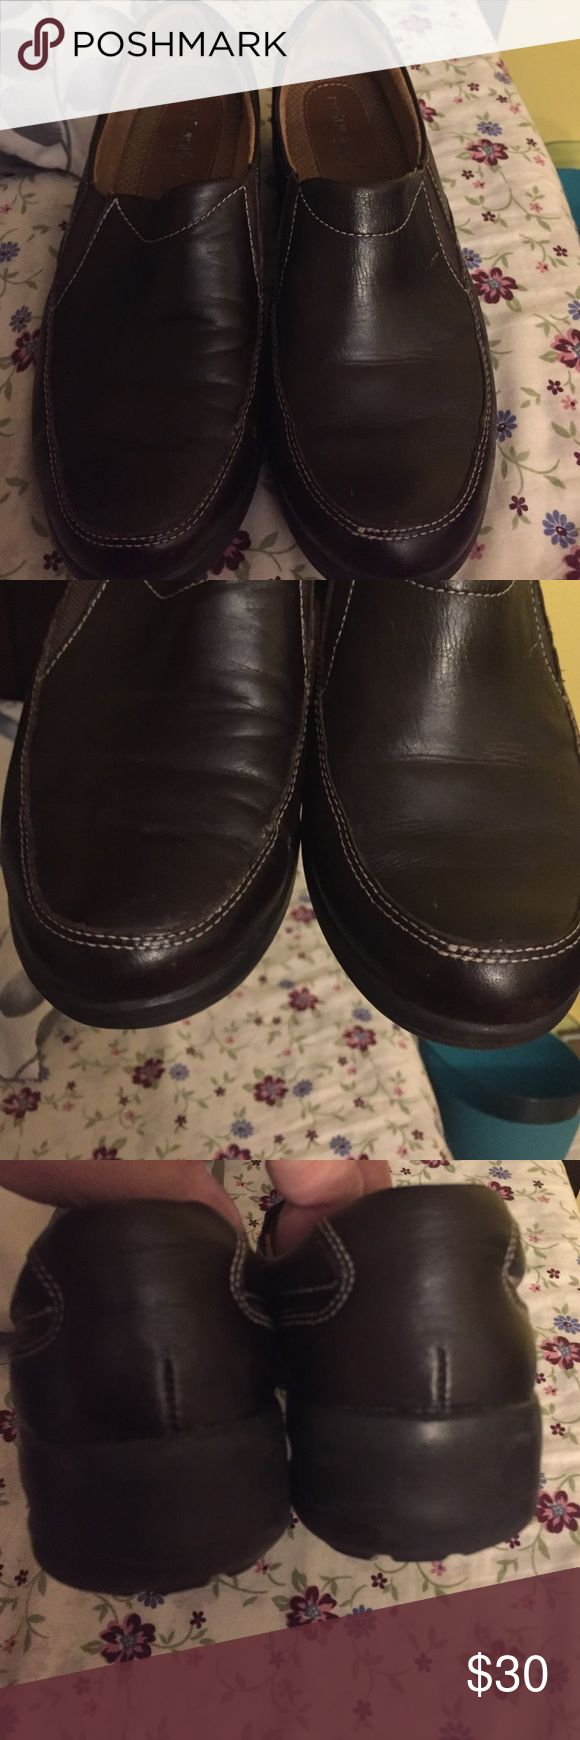 8.5pair of Naturalizer shoes, Like new. 🌺🌸Natural soul by Naturalizer, there are no signs of wear or tear on the shoe, there might be some minor wear due to the shoe being of genuine leather. I wore these to my office less than a handful of times. Make an offer! 🌸 🌺 Naturalizer Shoes